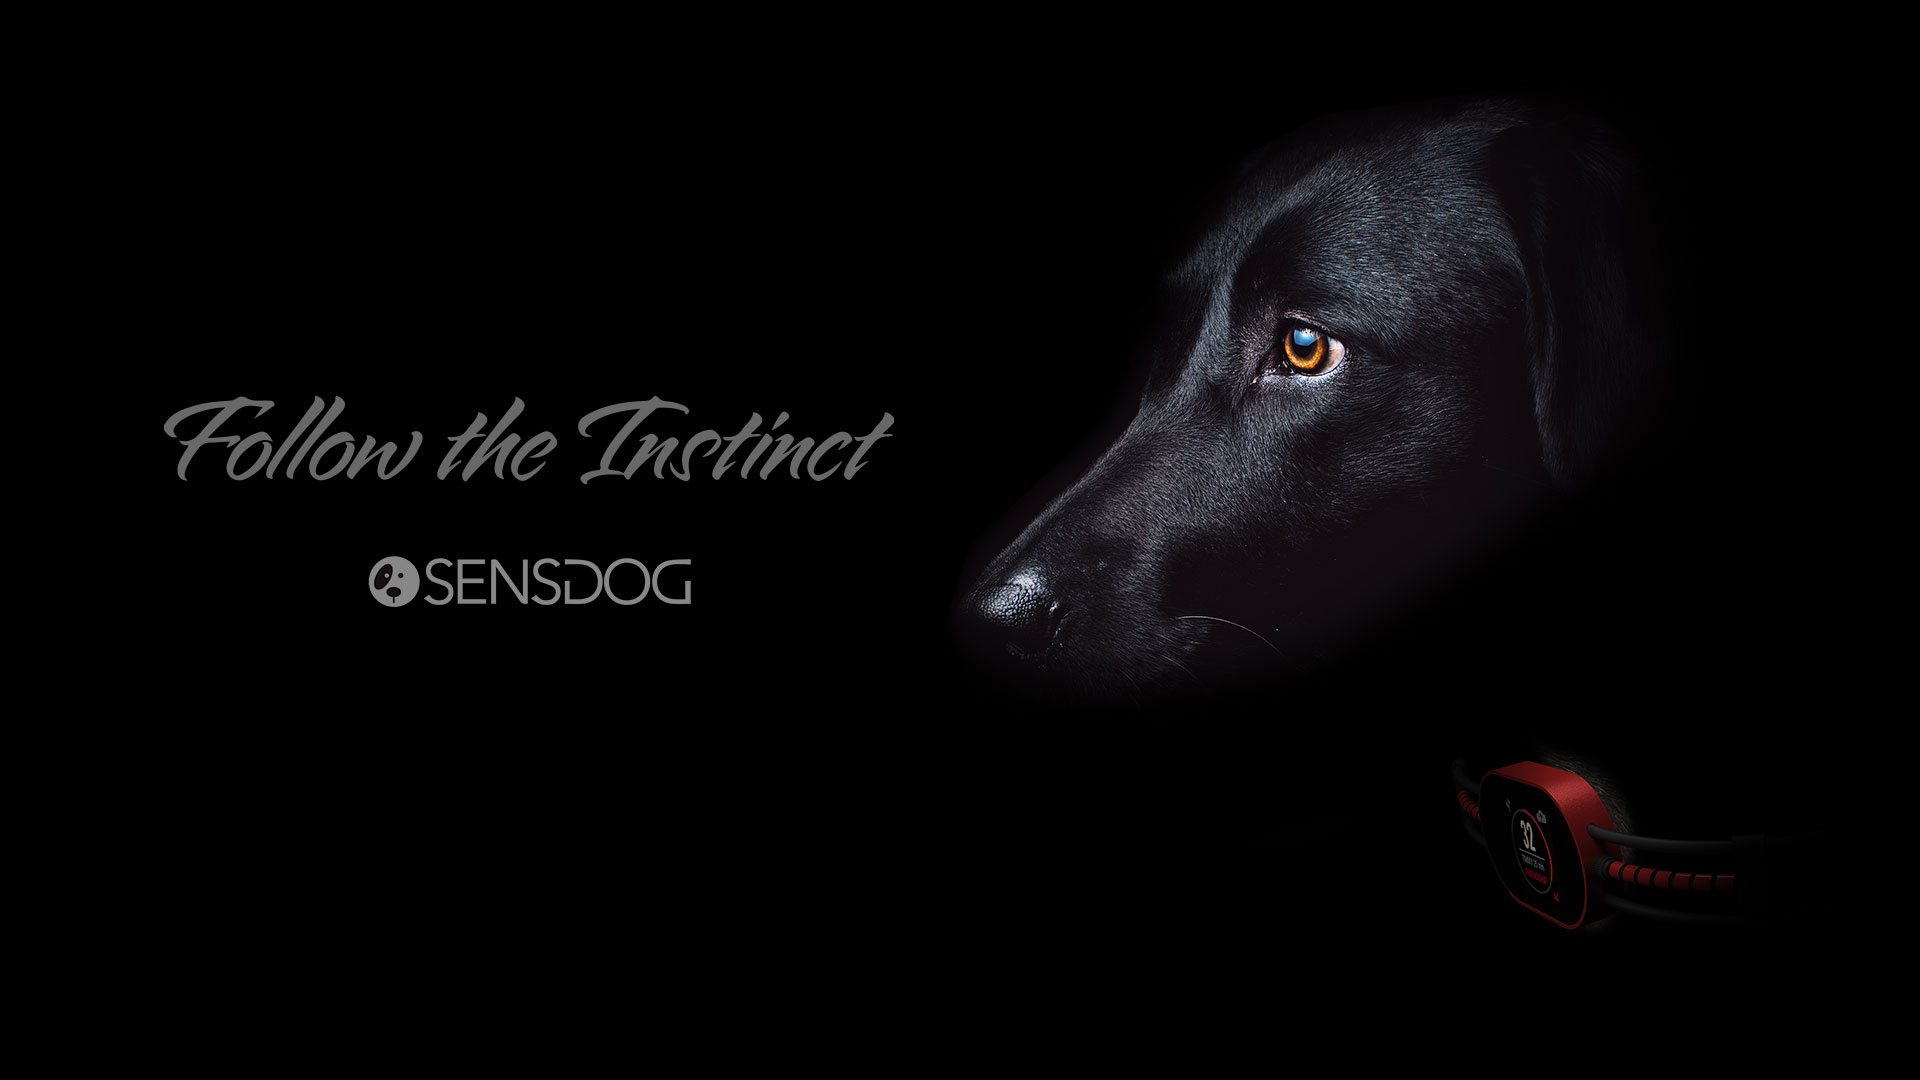 sensdog_dark_dog_photo_screensaver_hd